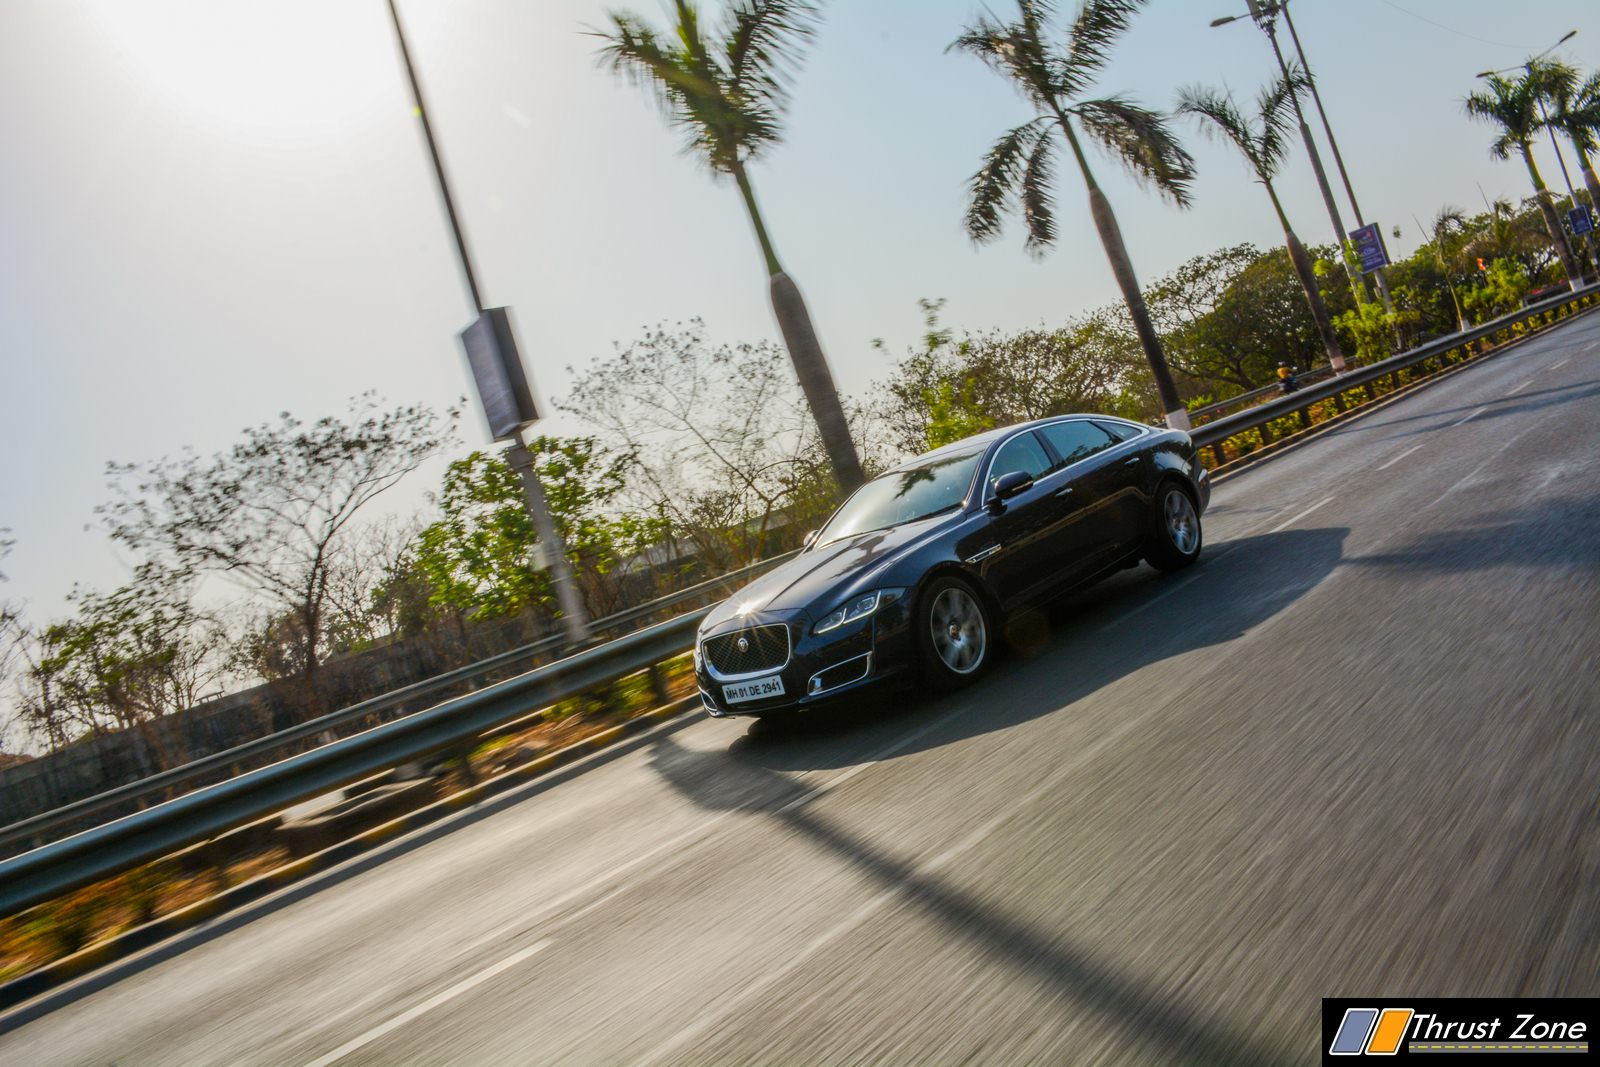 https://www.thrustzone.com/wp-content/uploads/2019/05/2019-Jaguar-XJ-50-Diesel-V6-Review-6.jpg